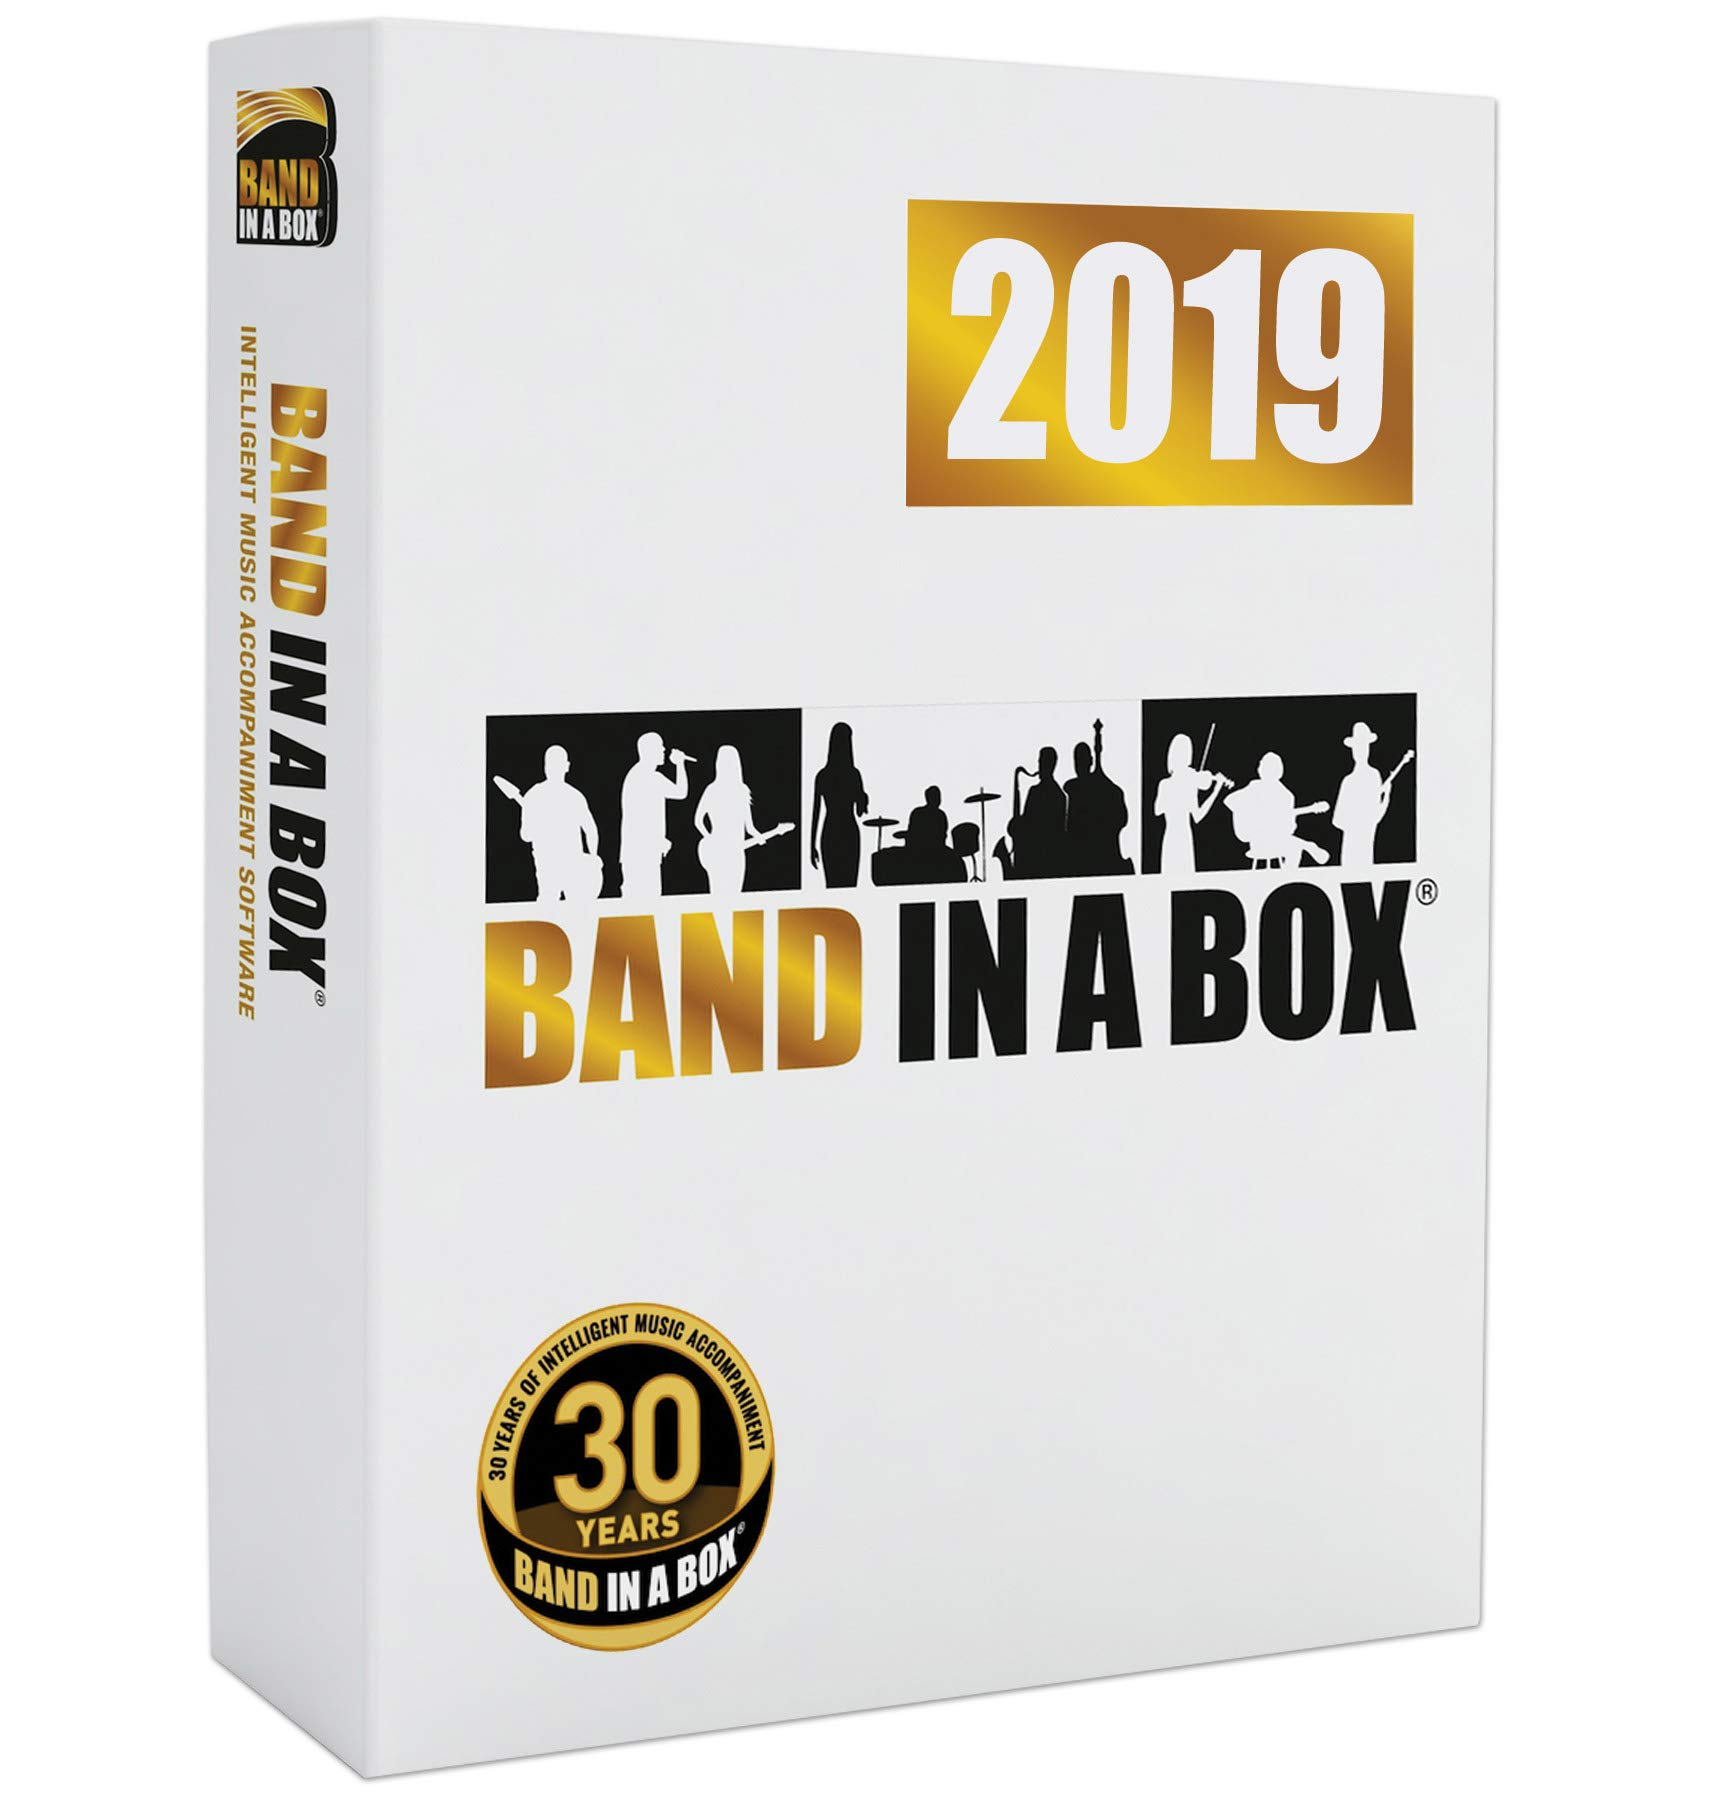 Band-in-a-Box 2019 Pro [Windows USB Flash Drive] - Create your own backing tracks by PG Music Inc.